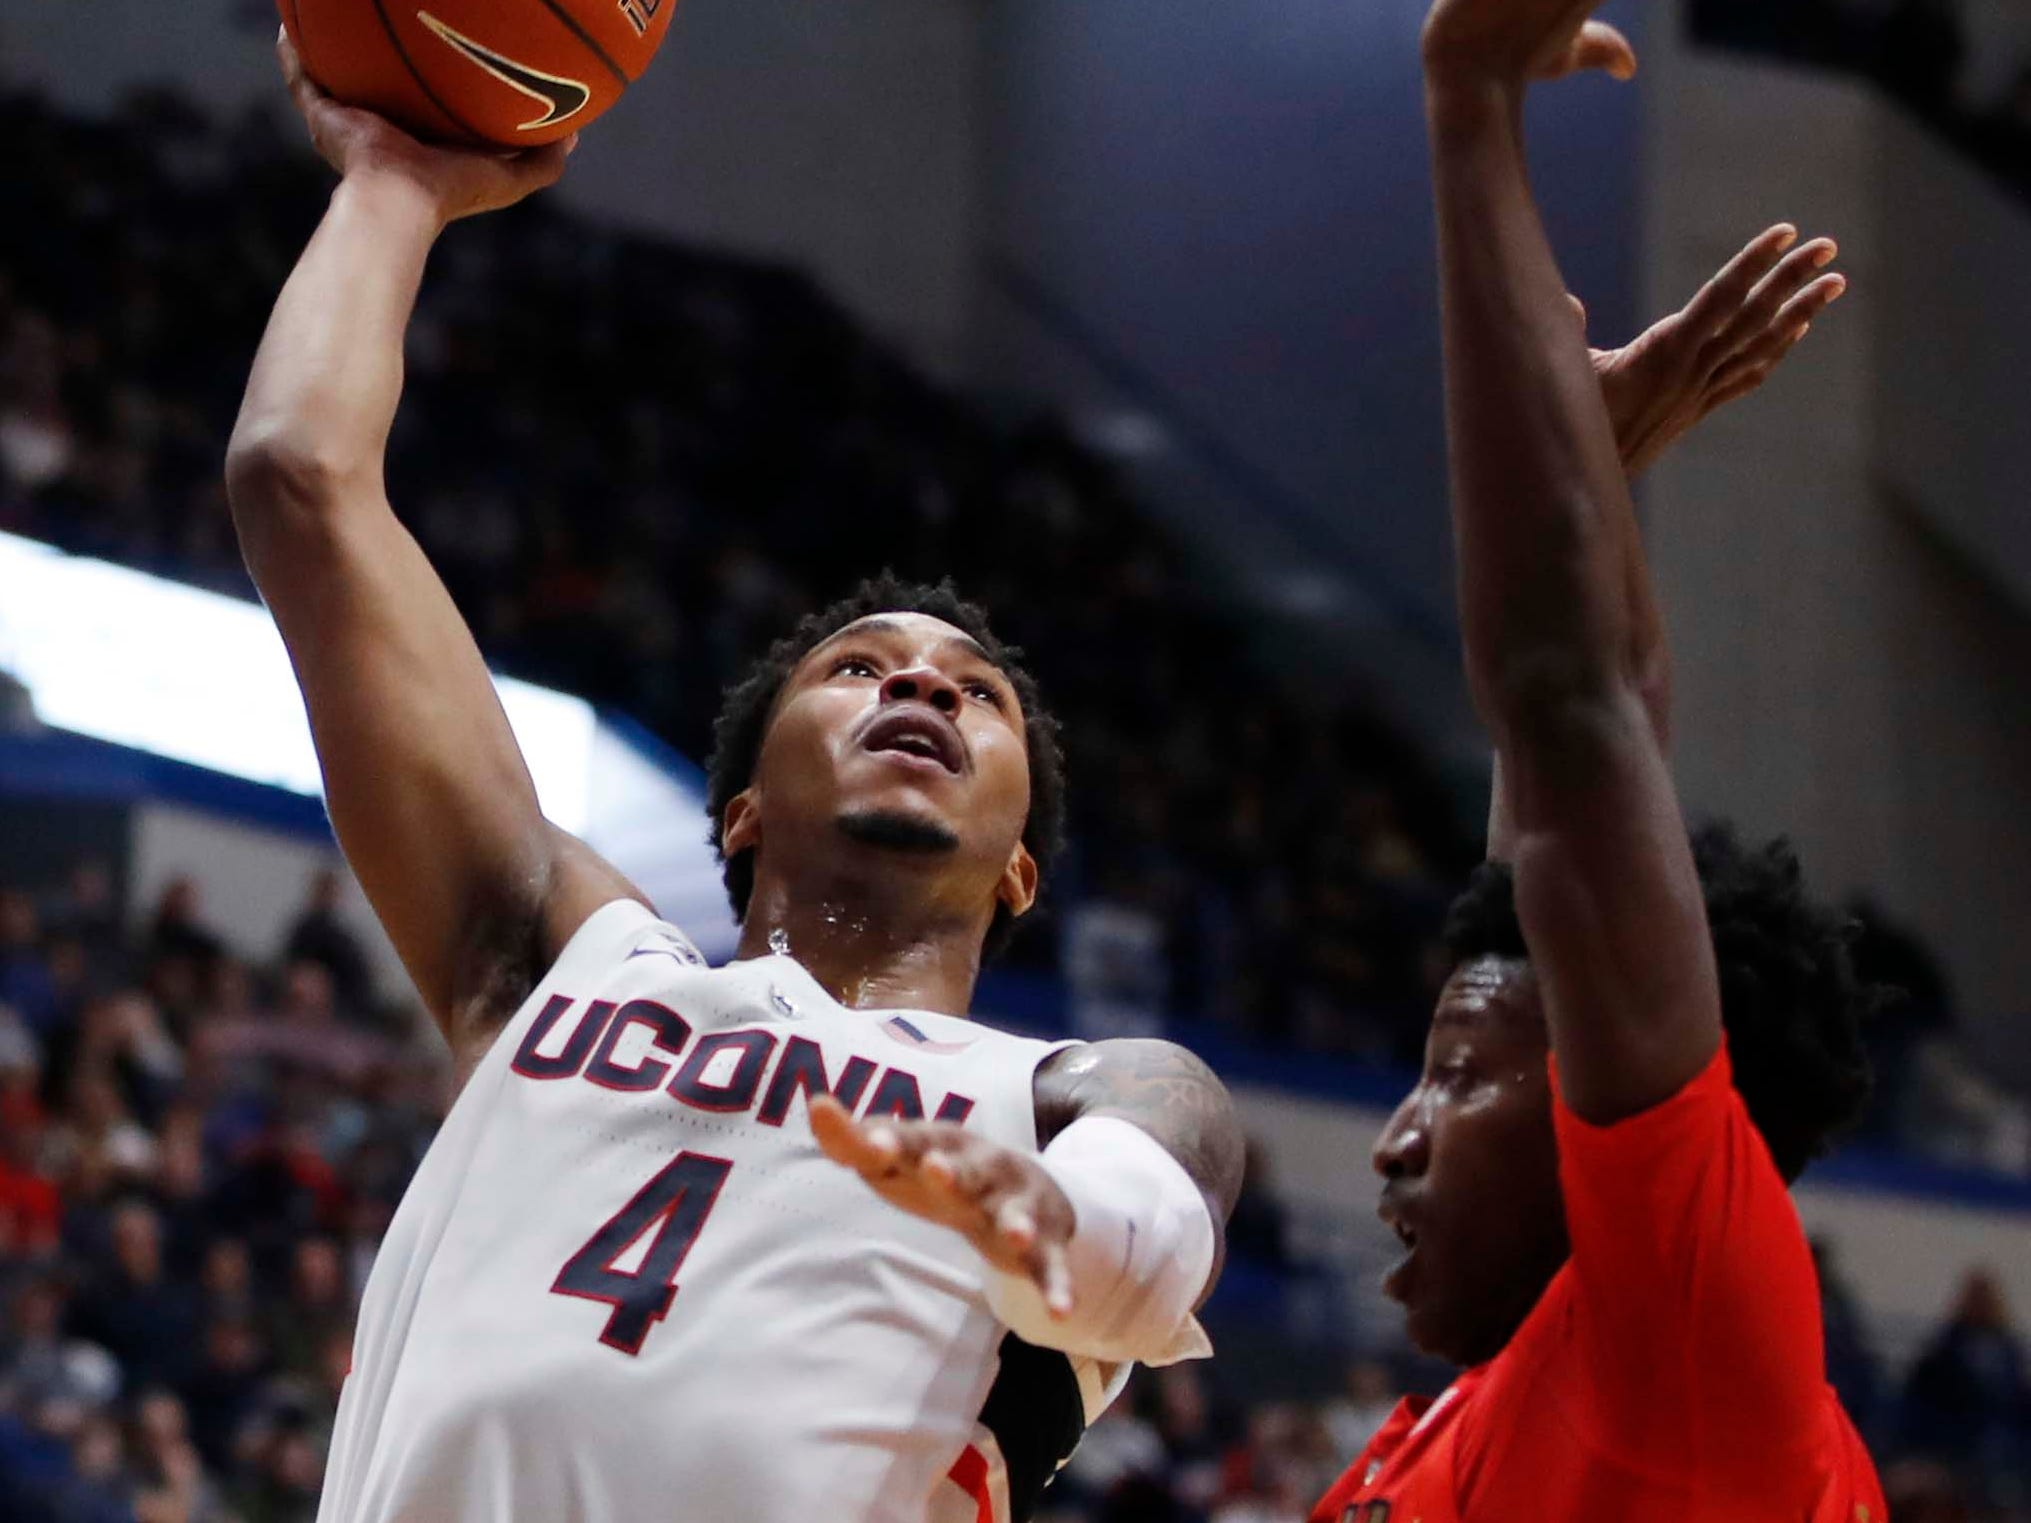 Dec 2, 2018: Connecticut Huskies guard Jalen Adams (4) shoots against Arizona Wildcats guard Dylan Smith (3) in the first half at XL Center.